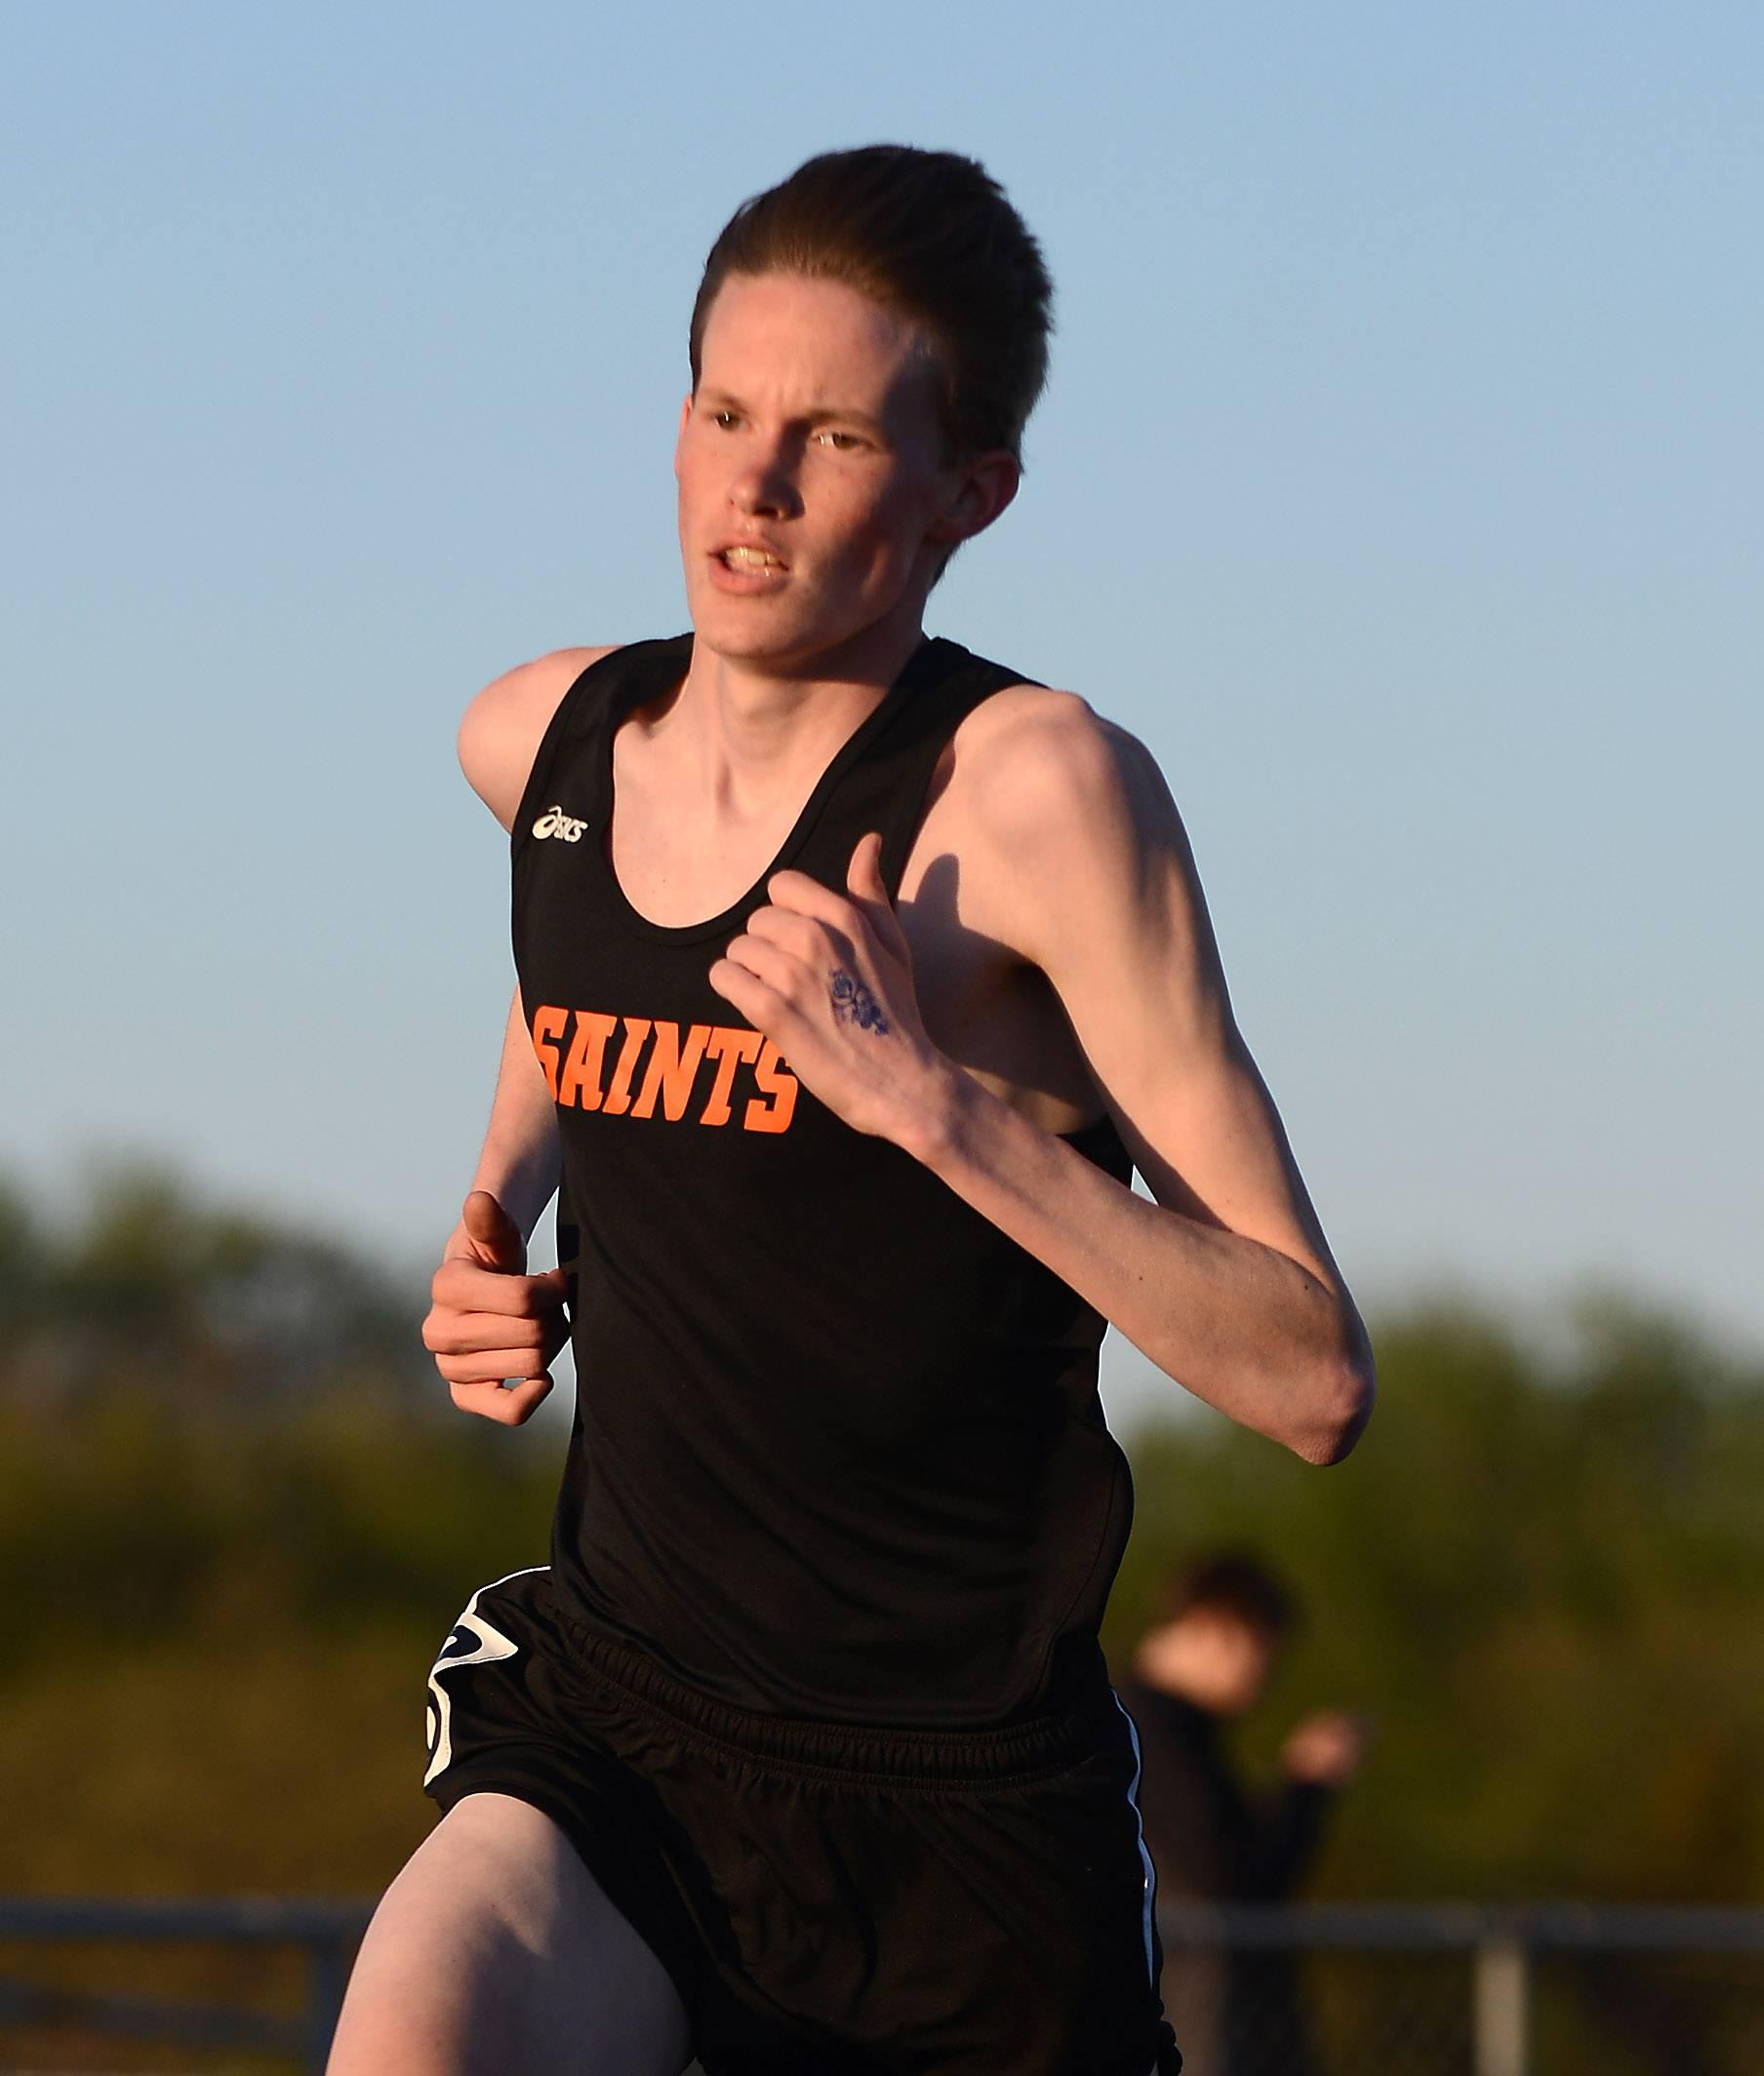 St. Charles East's Michael Gerkin won the 3200-meter run at the Kane County boys track meet in Streamwood Friday.